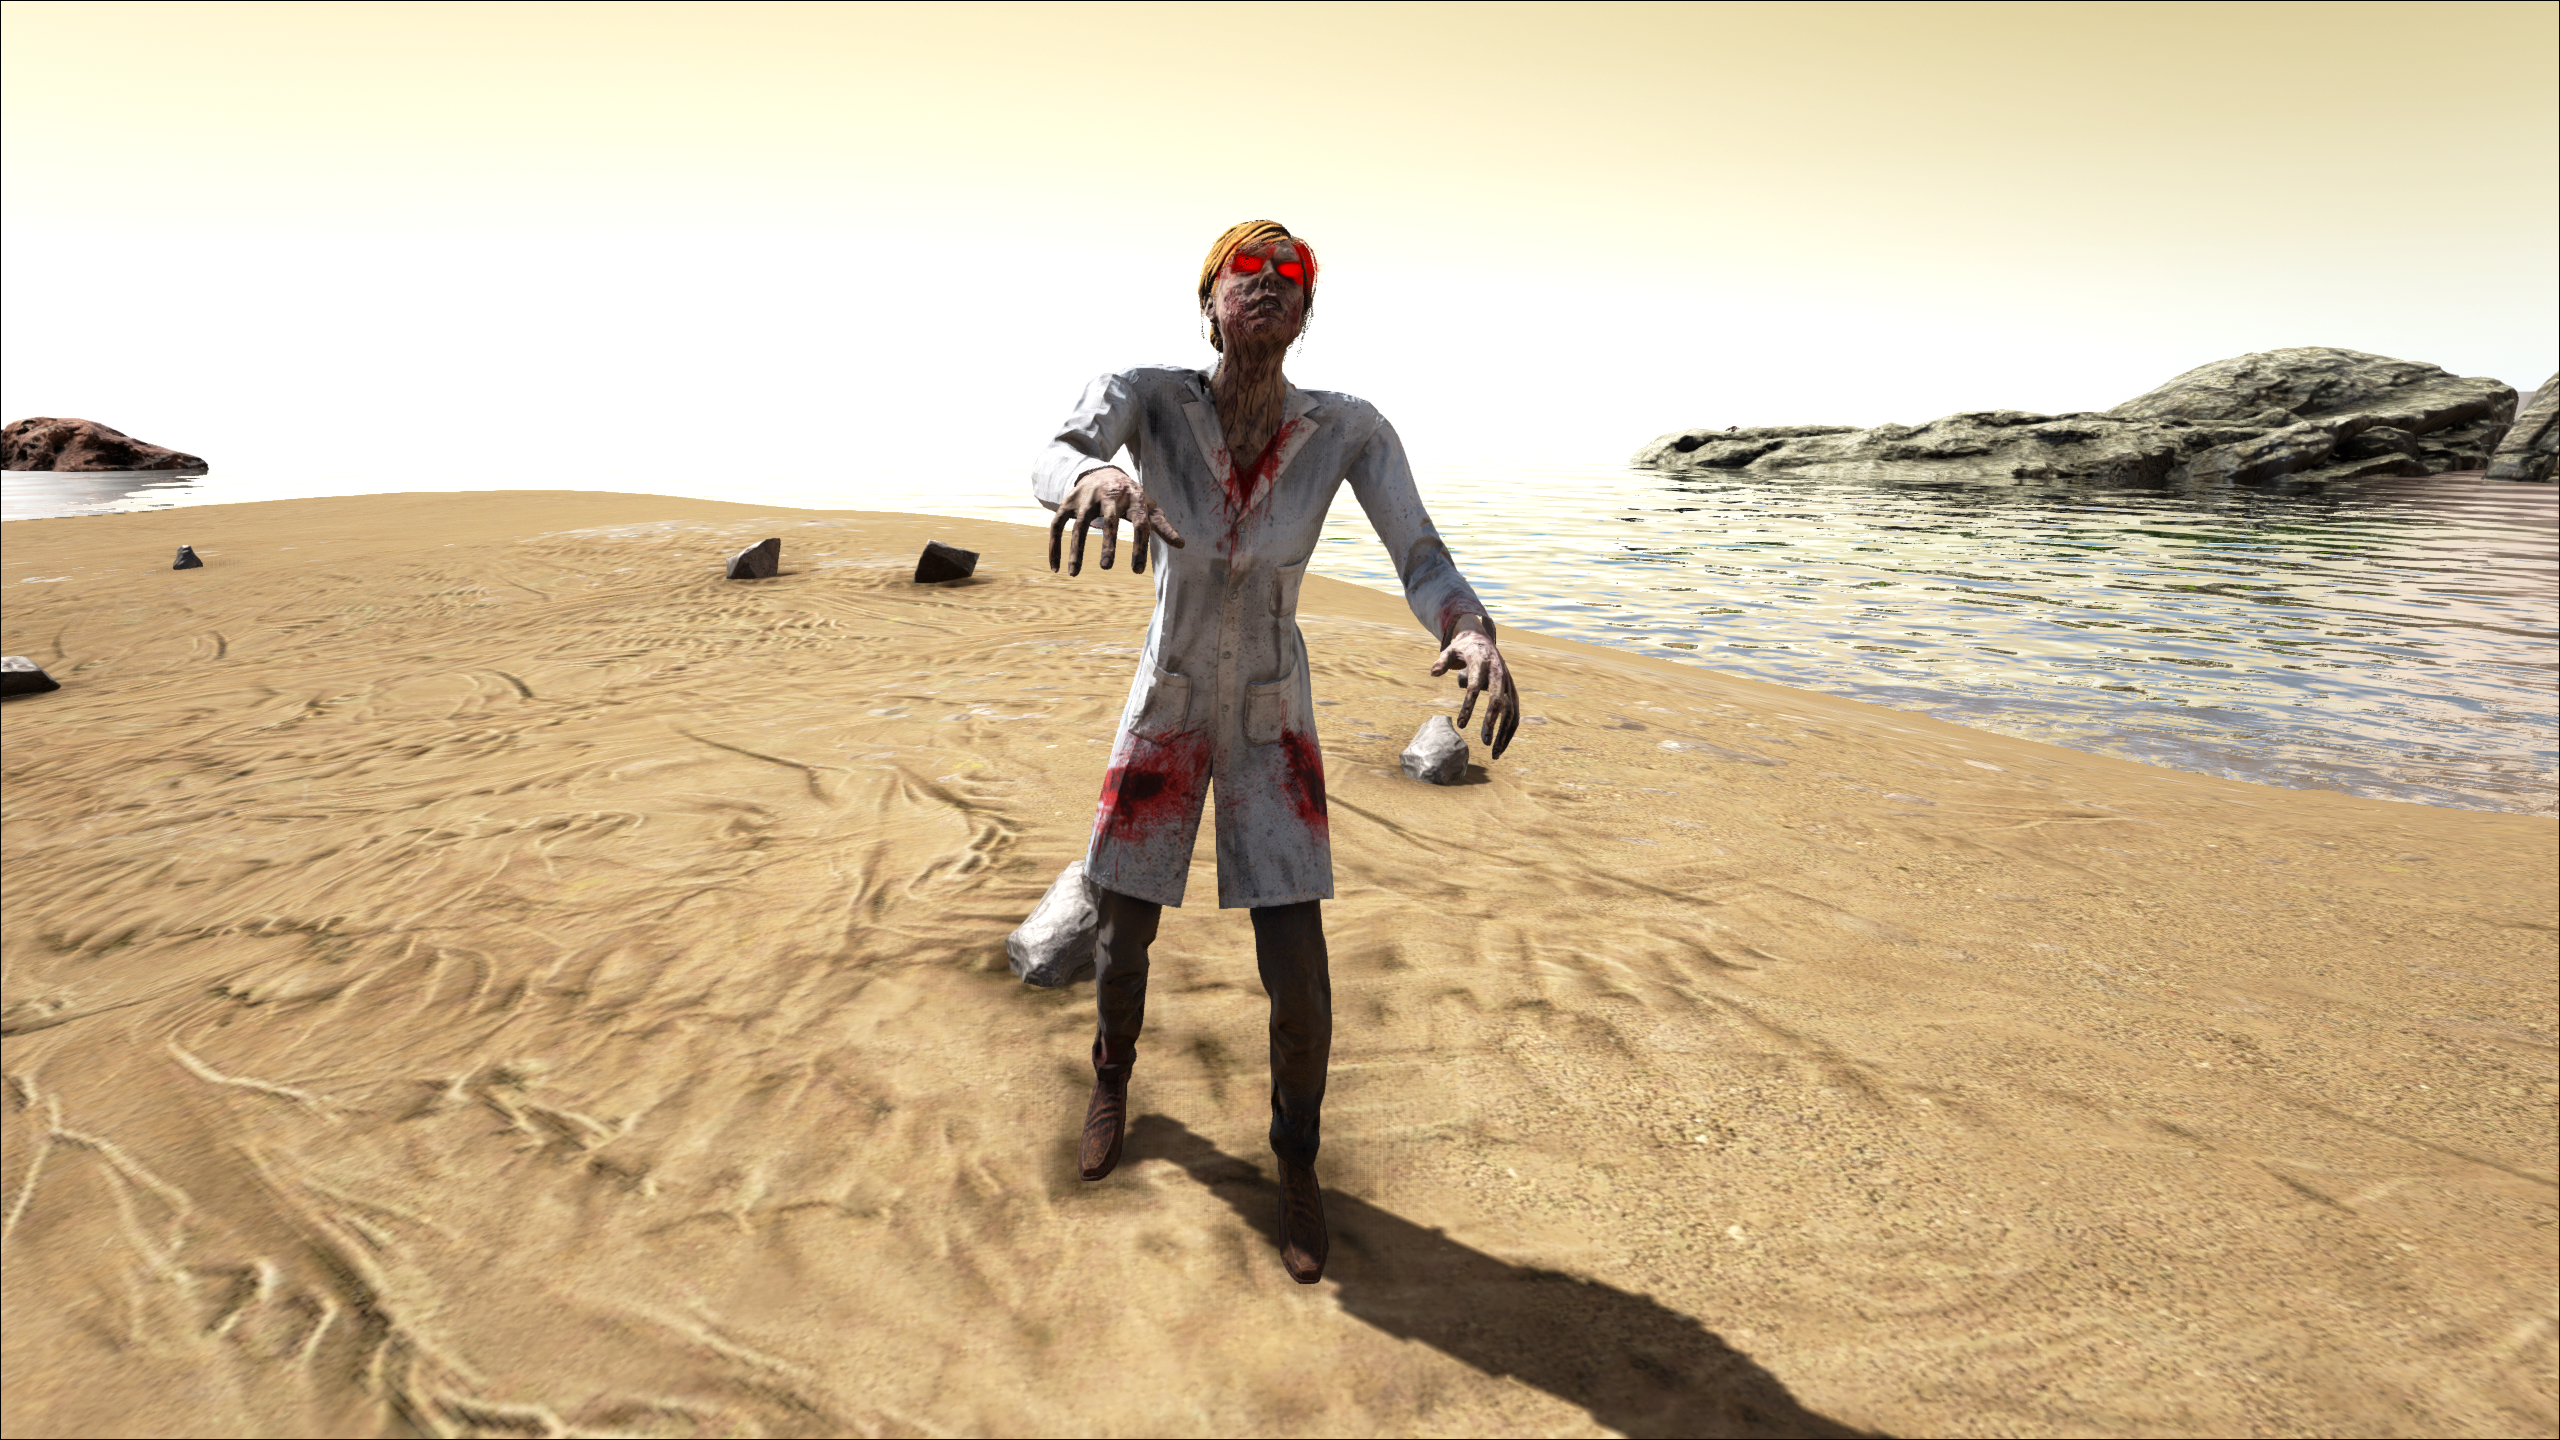 A zombie scientist roams the beach